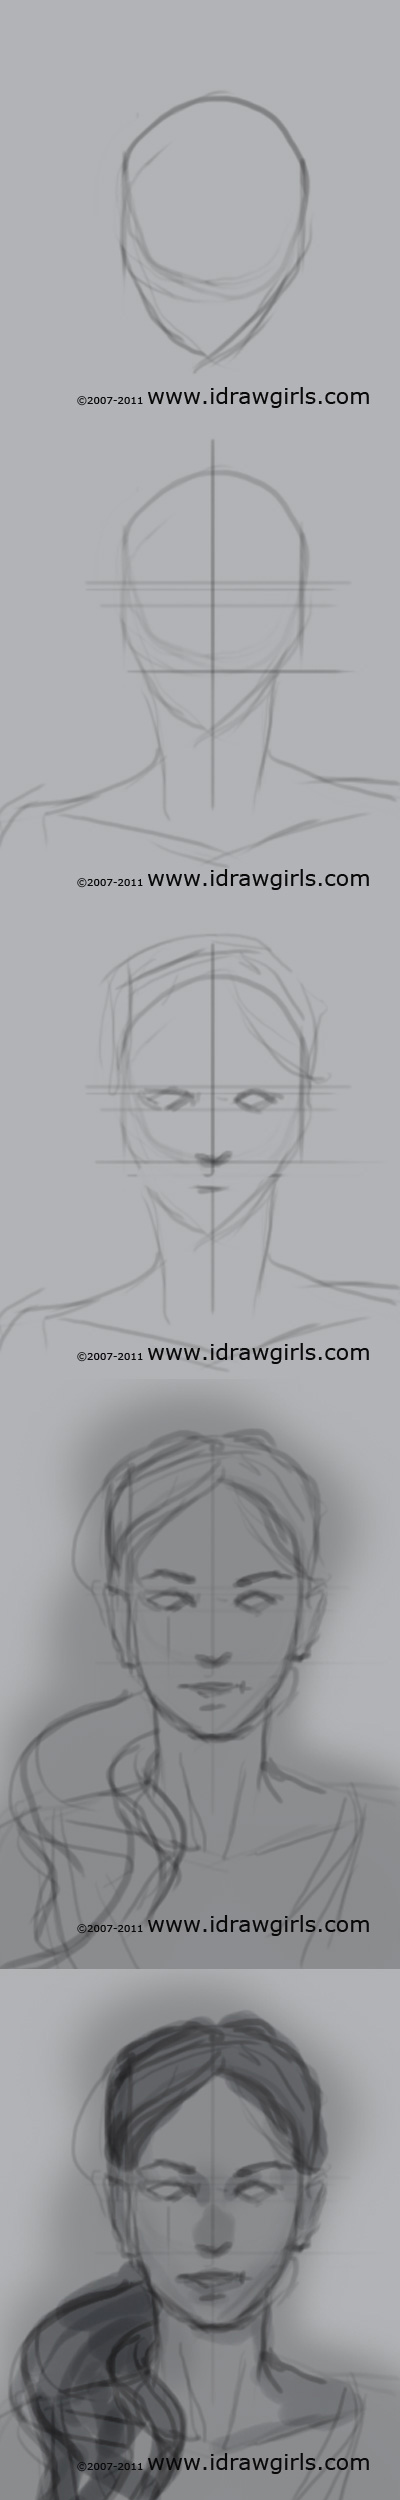 Drawn portrait front view View drawing  tutorial drawing